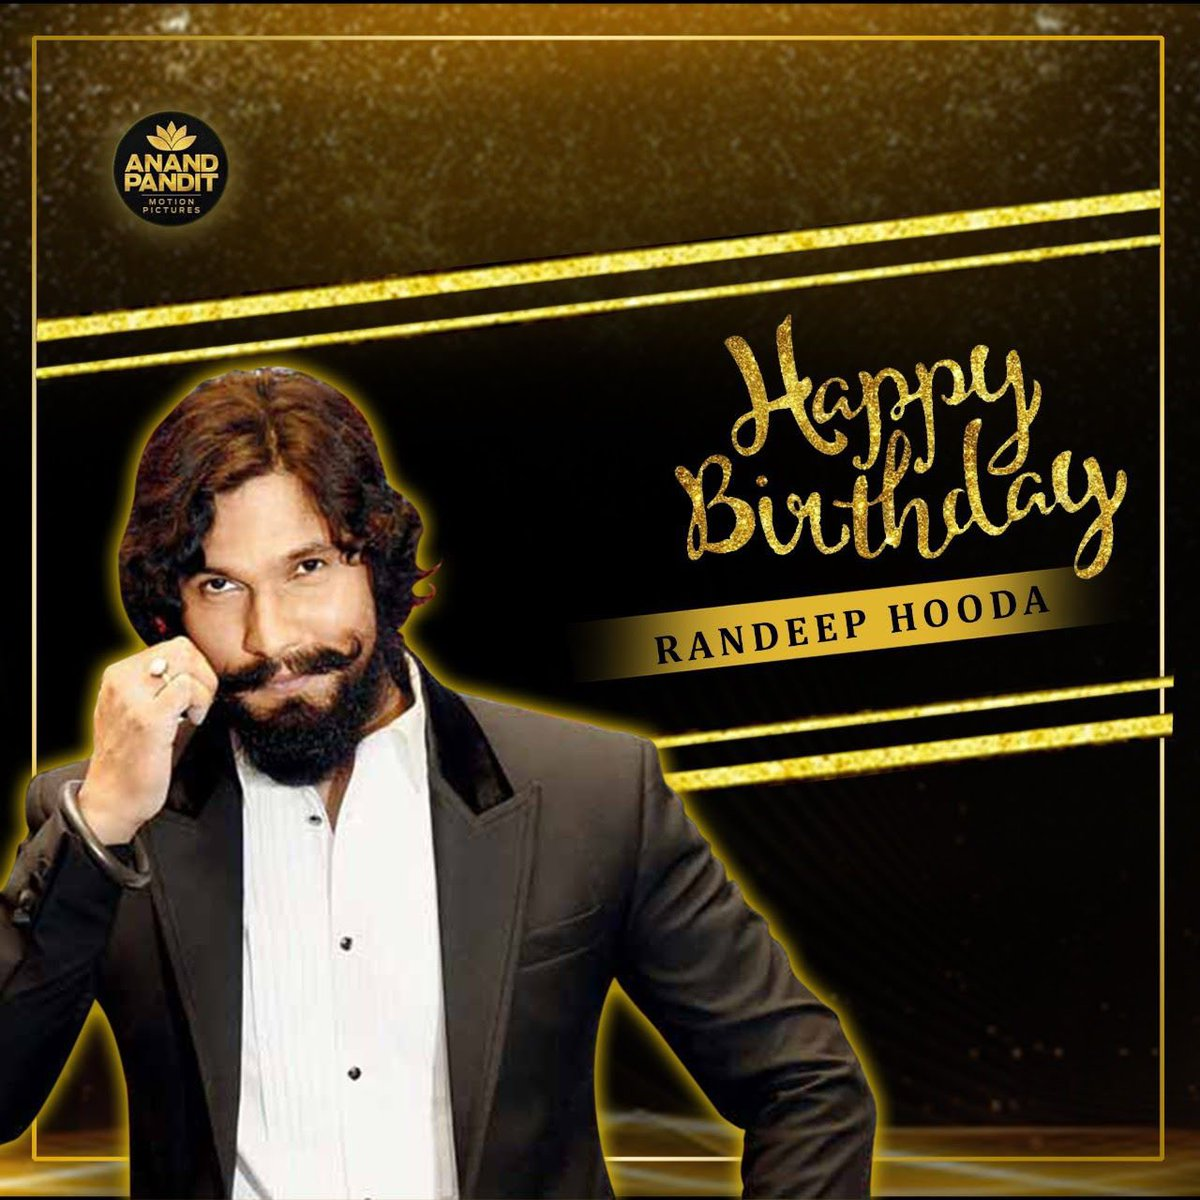 An actor par excellence who always puts up a stellar show on screen! Here's wishing @RandeepHooda a very Happy Birthday. https://t.co/9WMU76qS0w